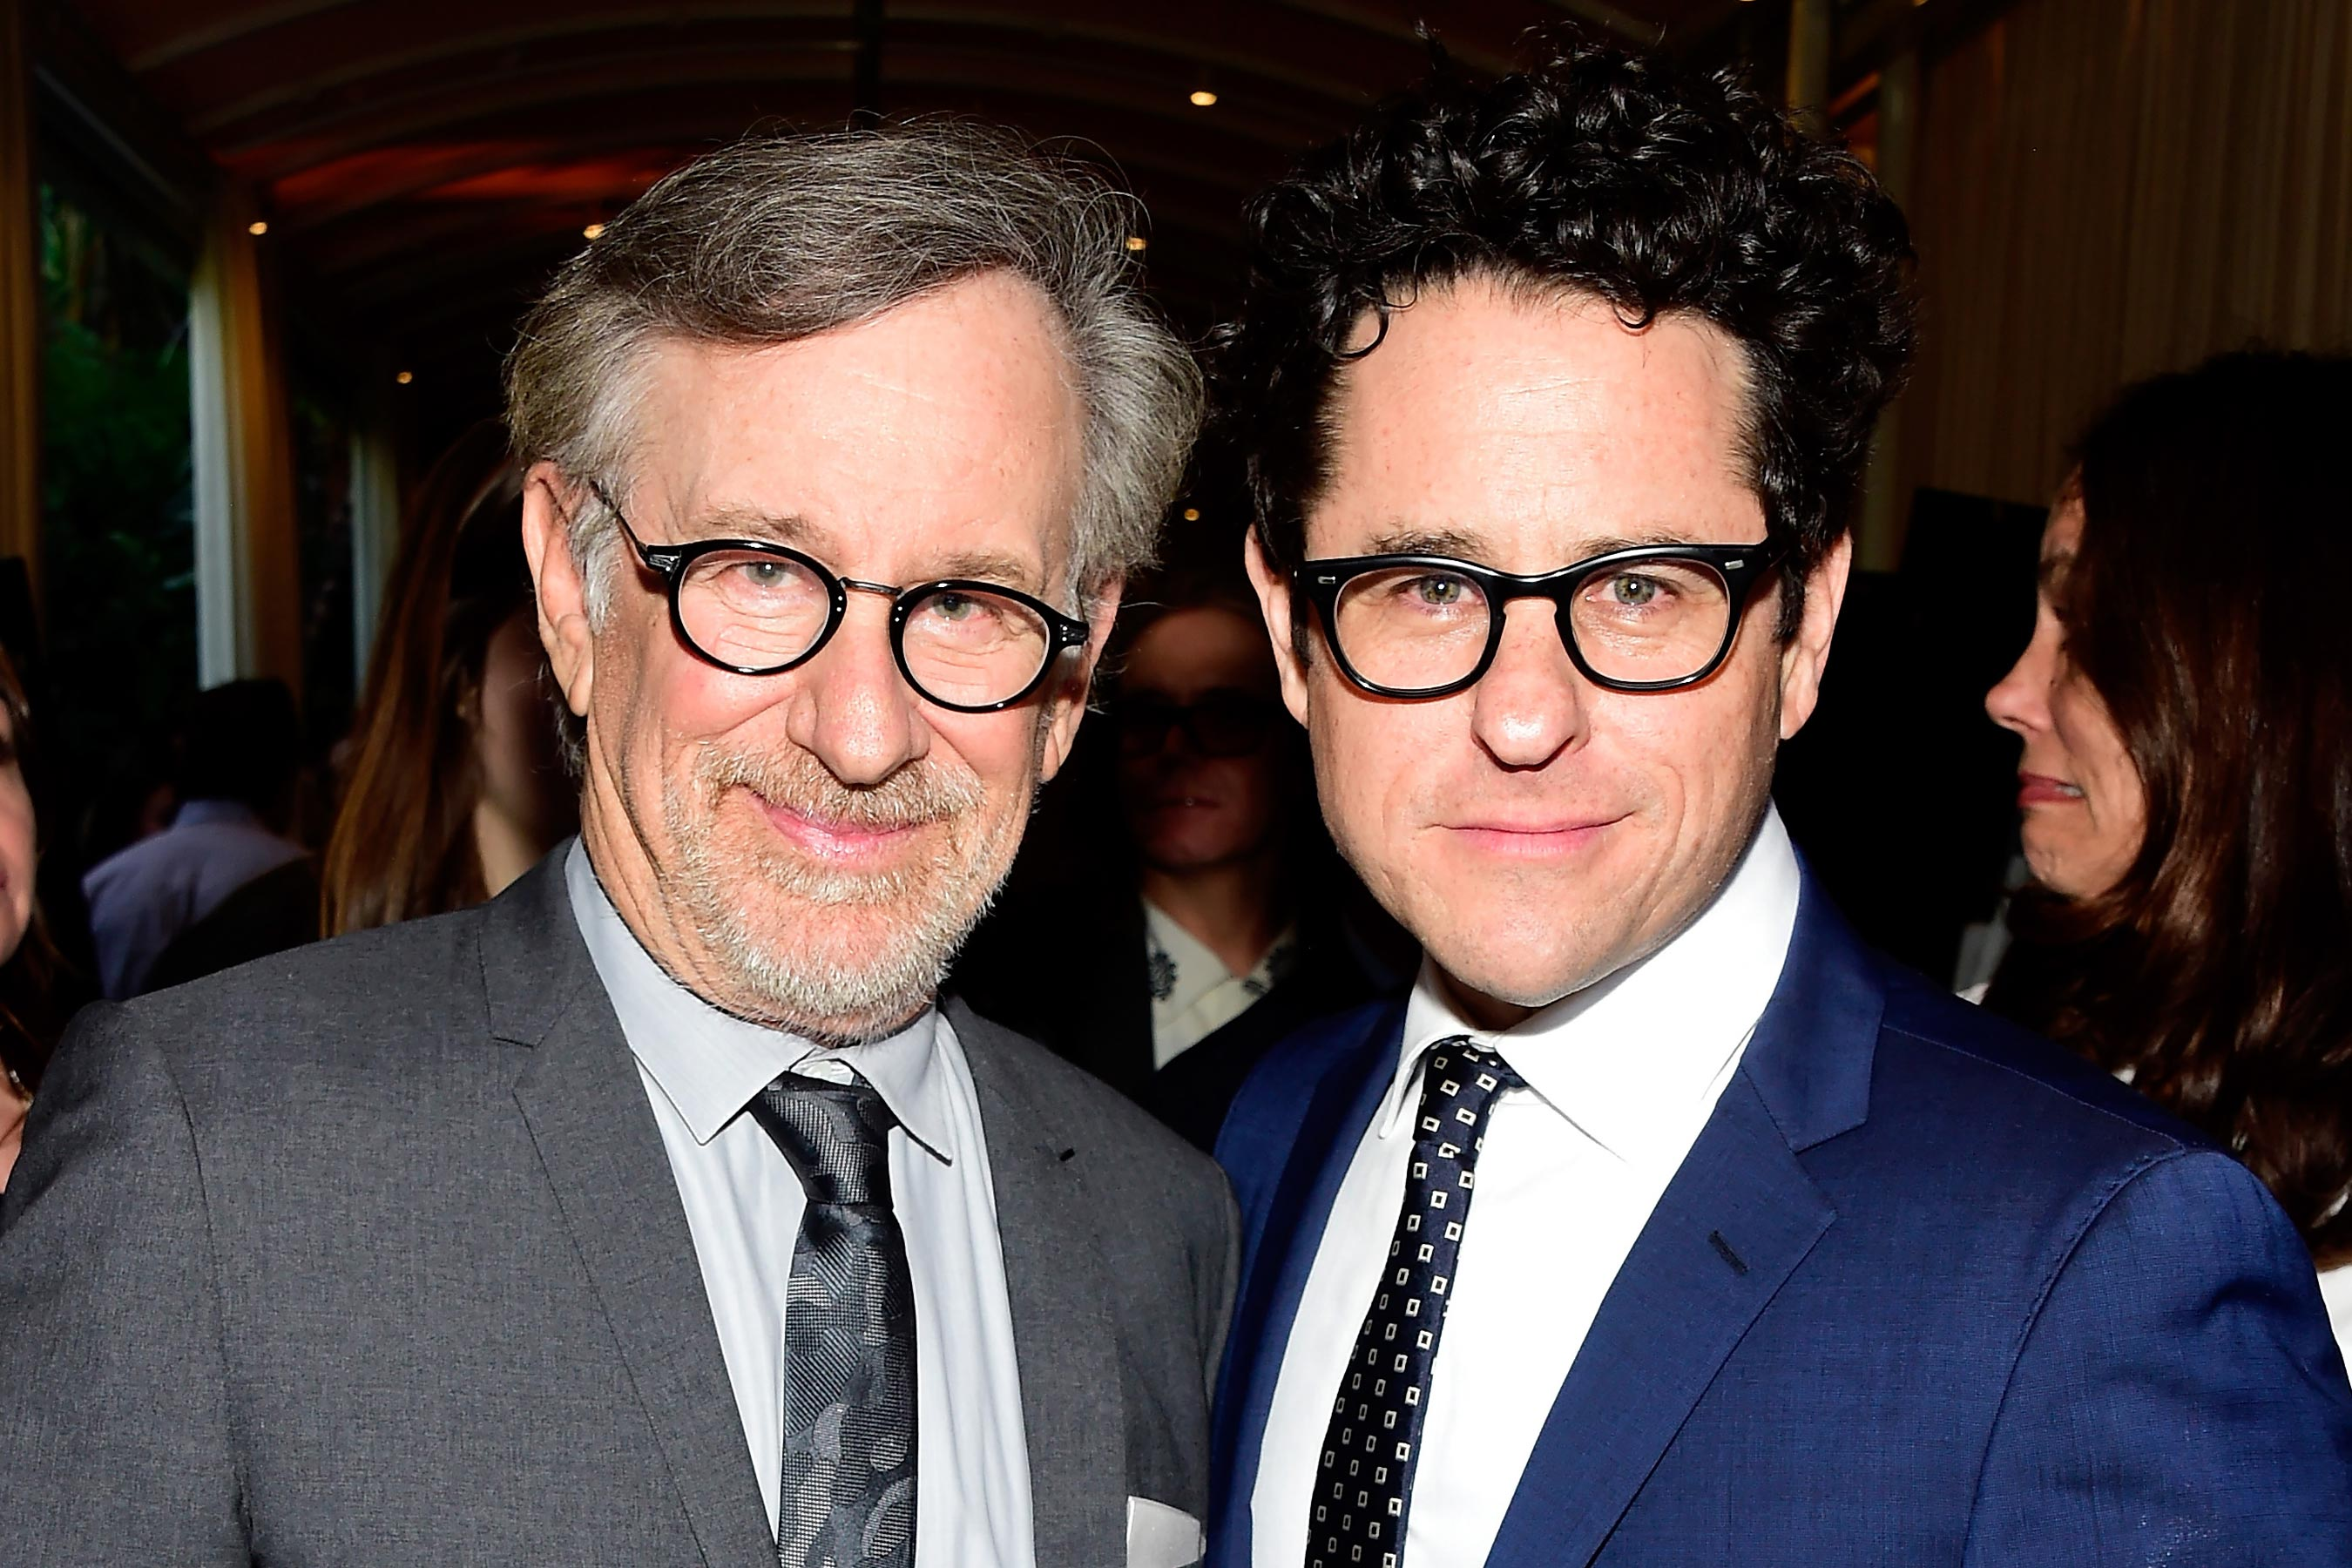 J.J. Abrams facts